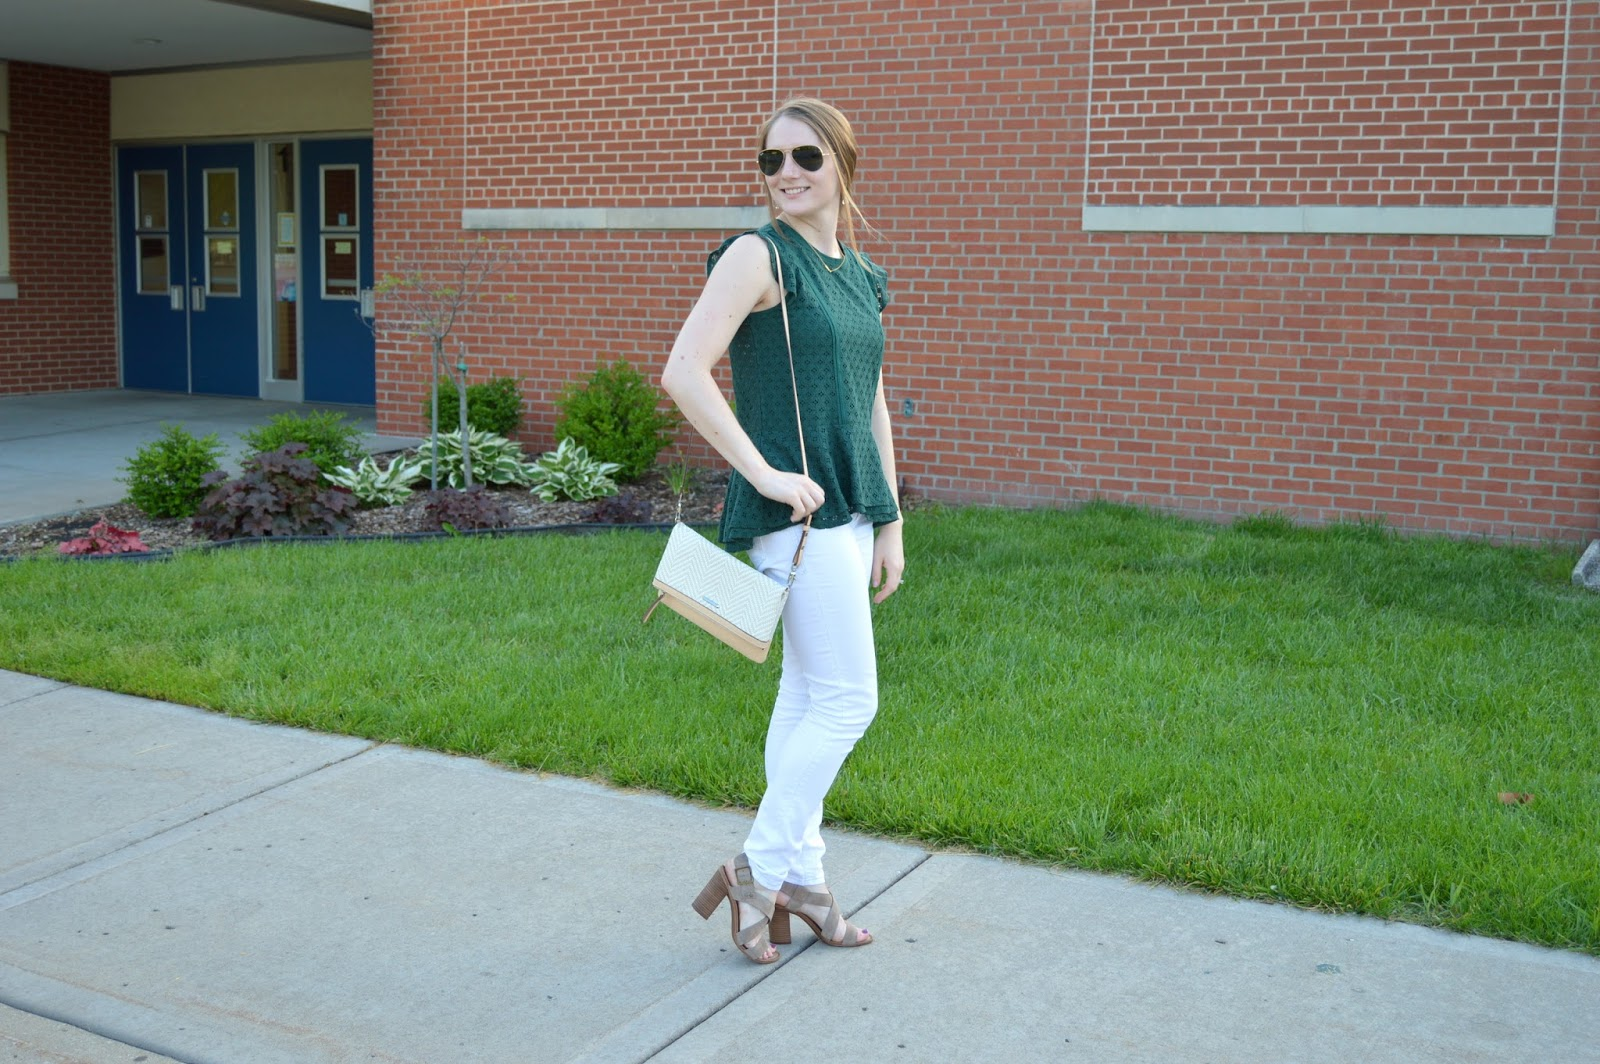 green lace peplum top with white jeans | what to wear with white jeans | white jeans for summer| summer outfit ideas | summer lookbook | what to wear this summer | green lace top outfit ideas | what to wear with a green top | a memory of us